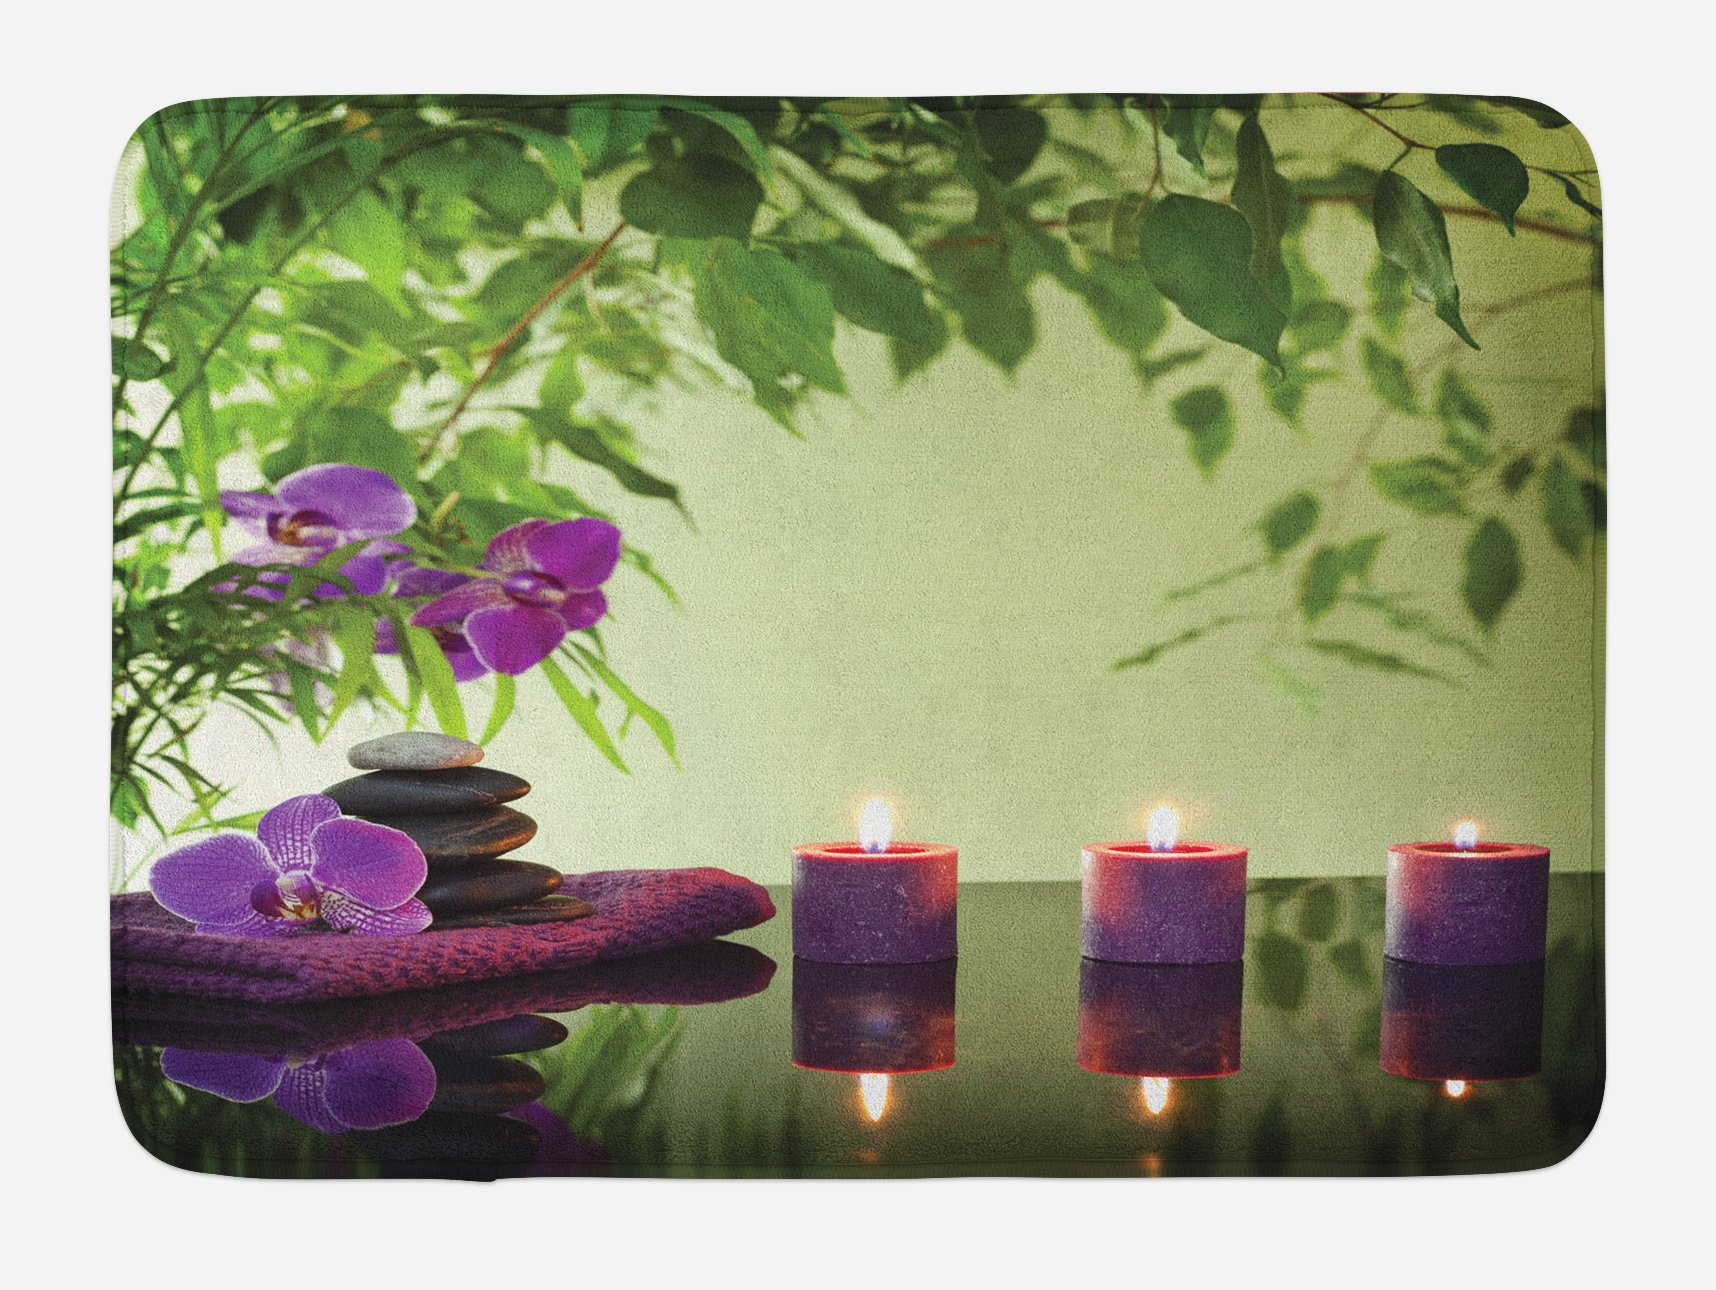 Ambesonne Spa Bath Mat, Zen Stones Aromatic Candles and Orchids Blooms Treatment Vacation, Plush Bathroom Decor Mat with Non Slip Backing, 29.5 W X 17.5 W Inches, Fern Green Purple Pale green